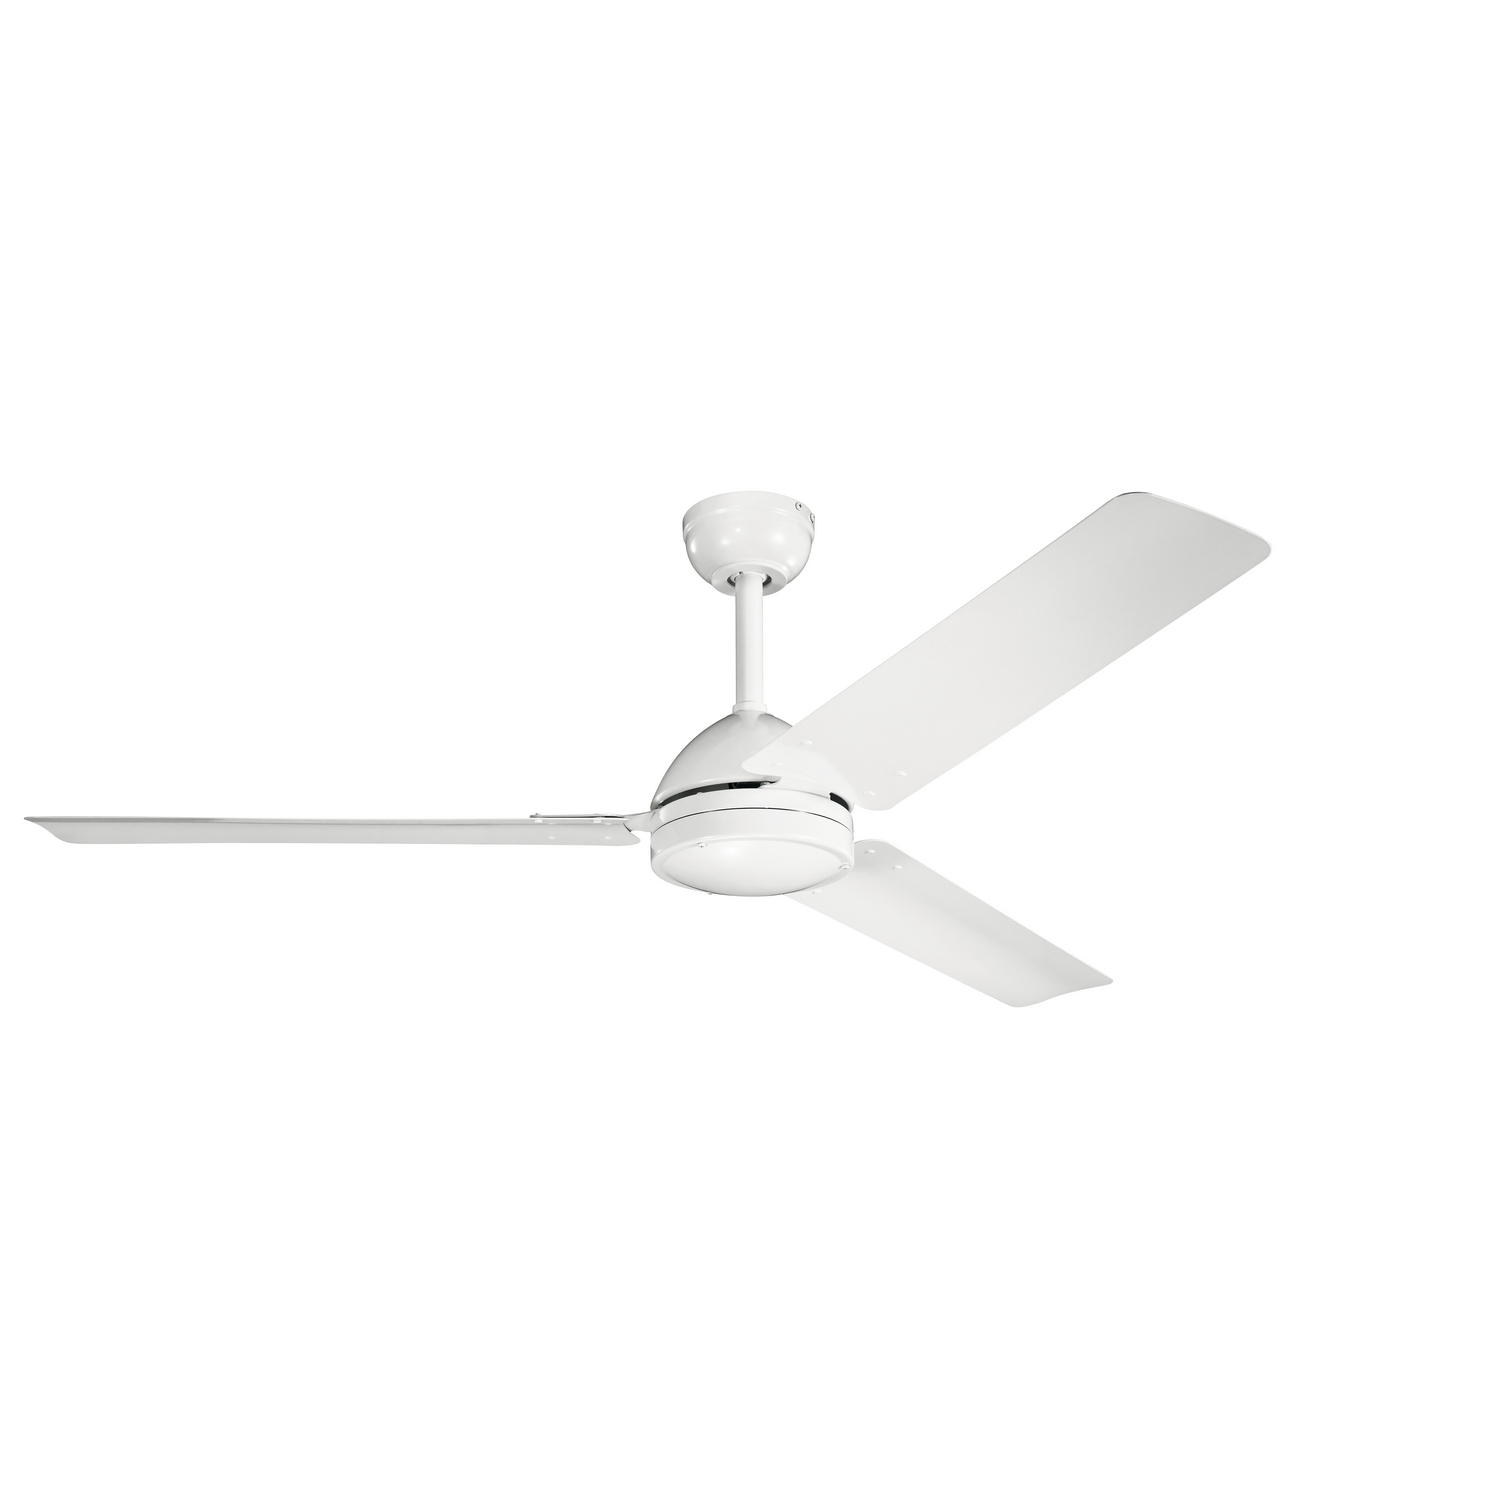 56 inchCeiling Fan from the Todo collection by Kichler 330025WH